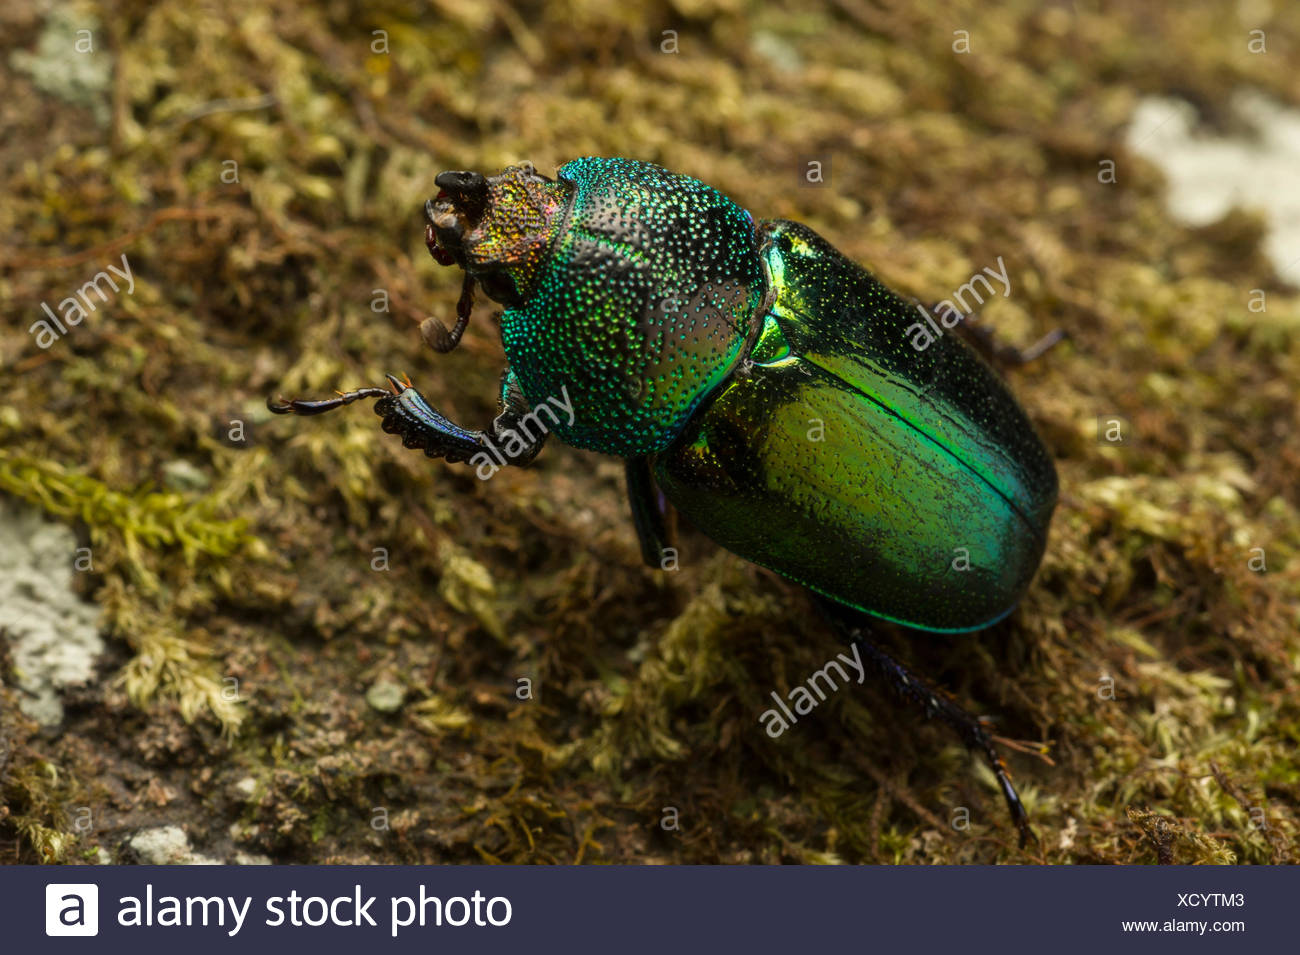 An extreme close up view of an iridescent green Christmas beetle, Anoplognathus, moving on the moss-covered forest floor in Tasmania's Wielangta State Forest. - Stock Image